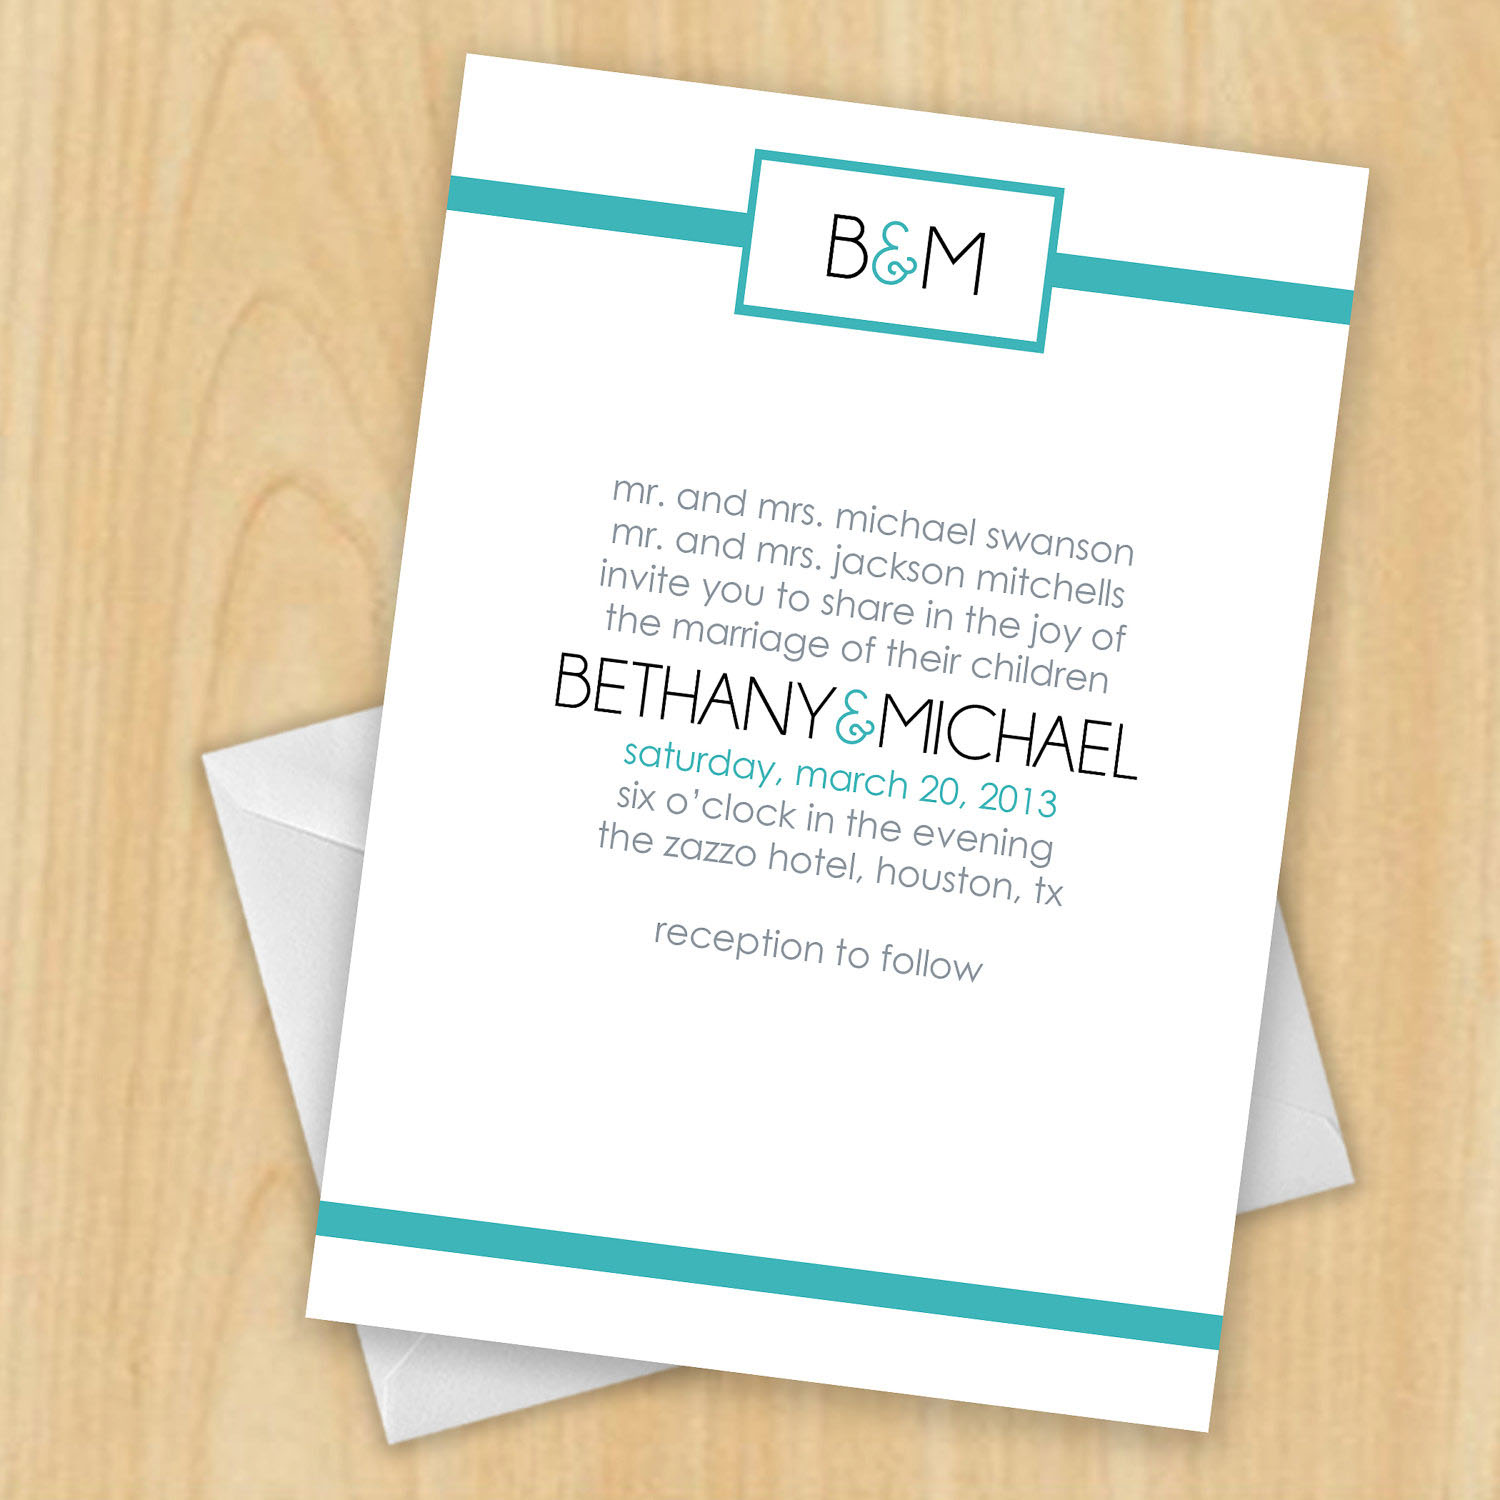 What Is The Etiquette For Wedding Invitations: Black Wedding Invitations